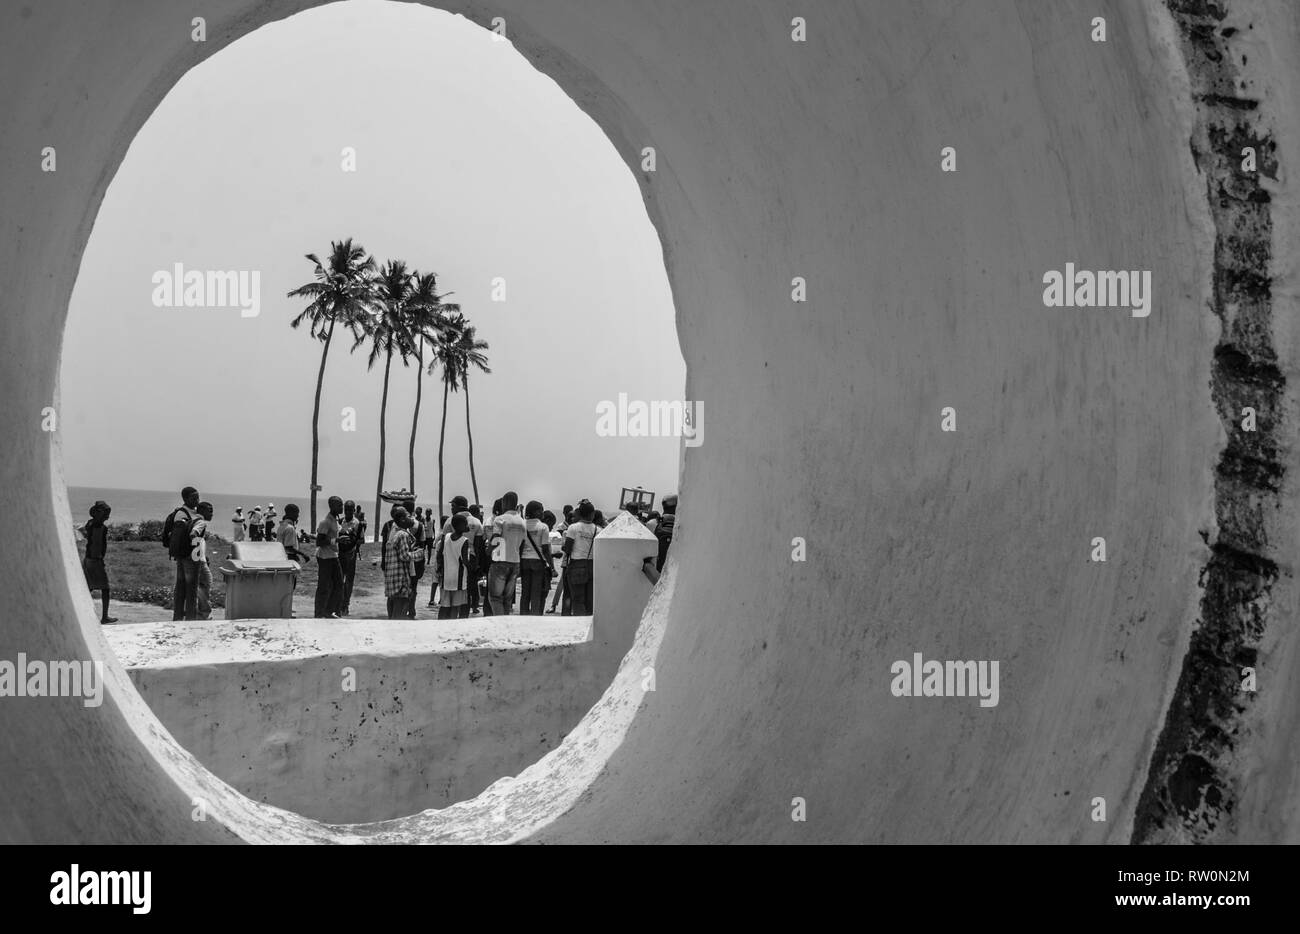 A view to the beach thorough the window of the St George of the MIne. Gathering crowd on the background of palm trees can be seen. Black and white. - Stock Image